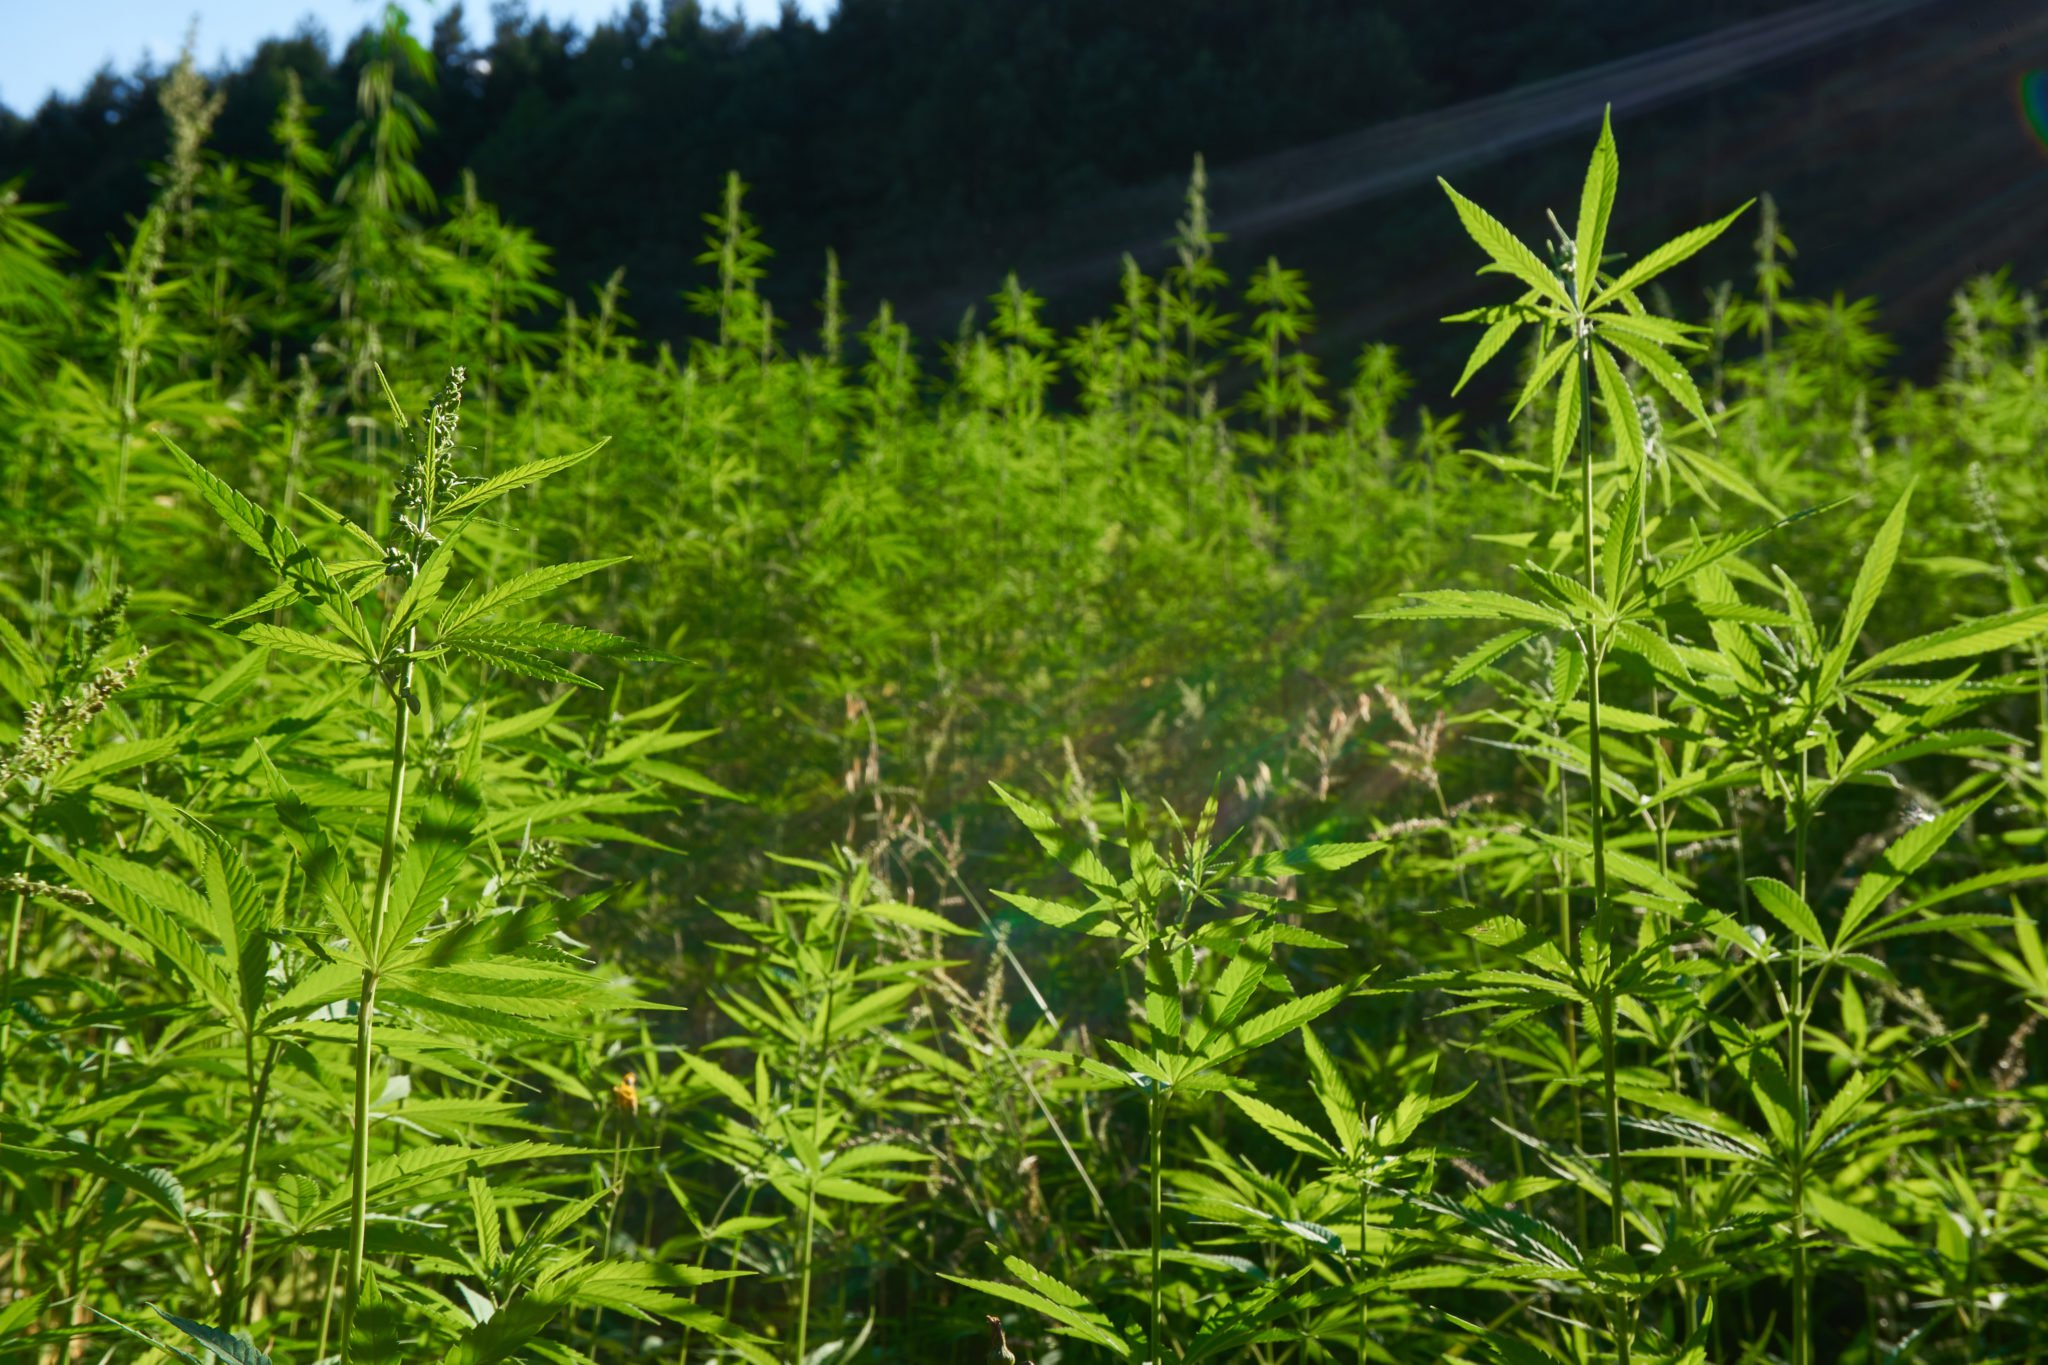 A densely packed hemp field in front of a tree-lined hill.